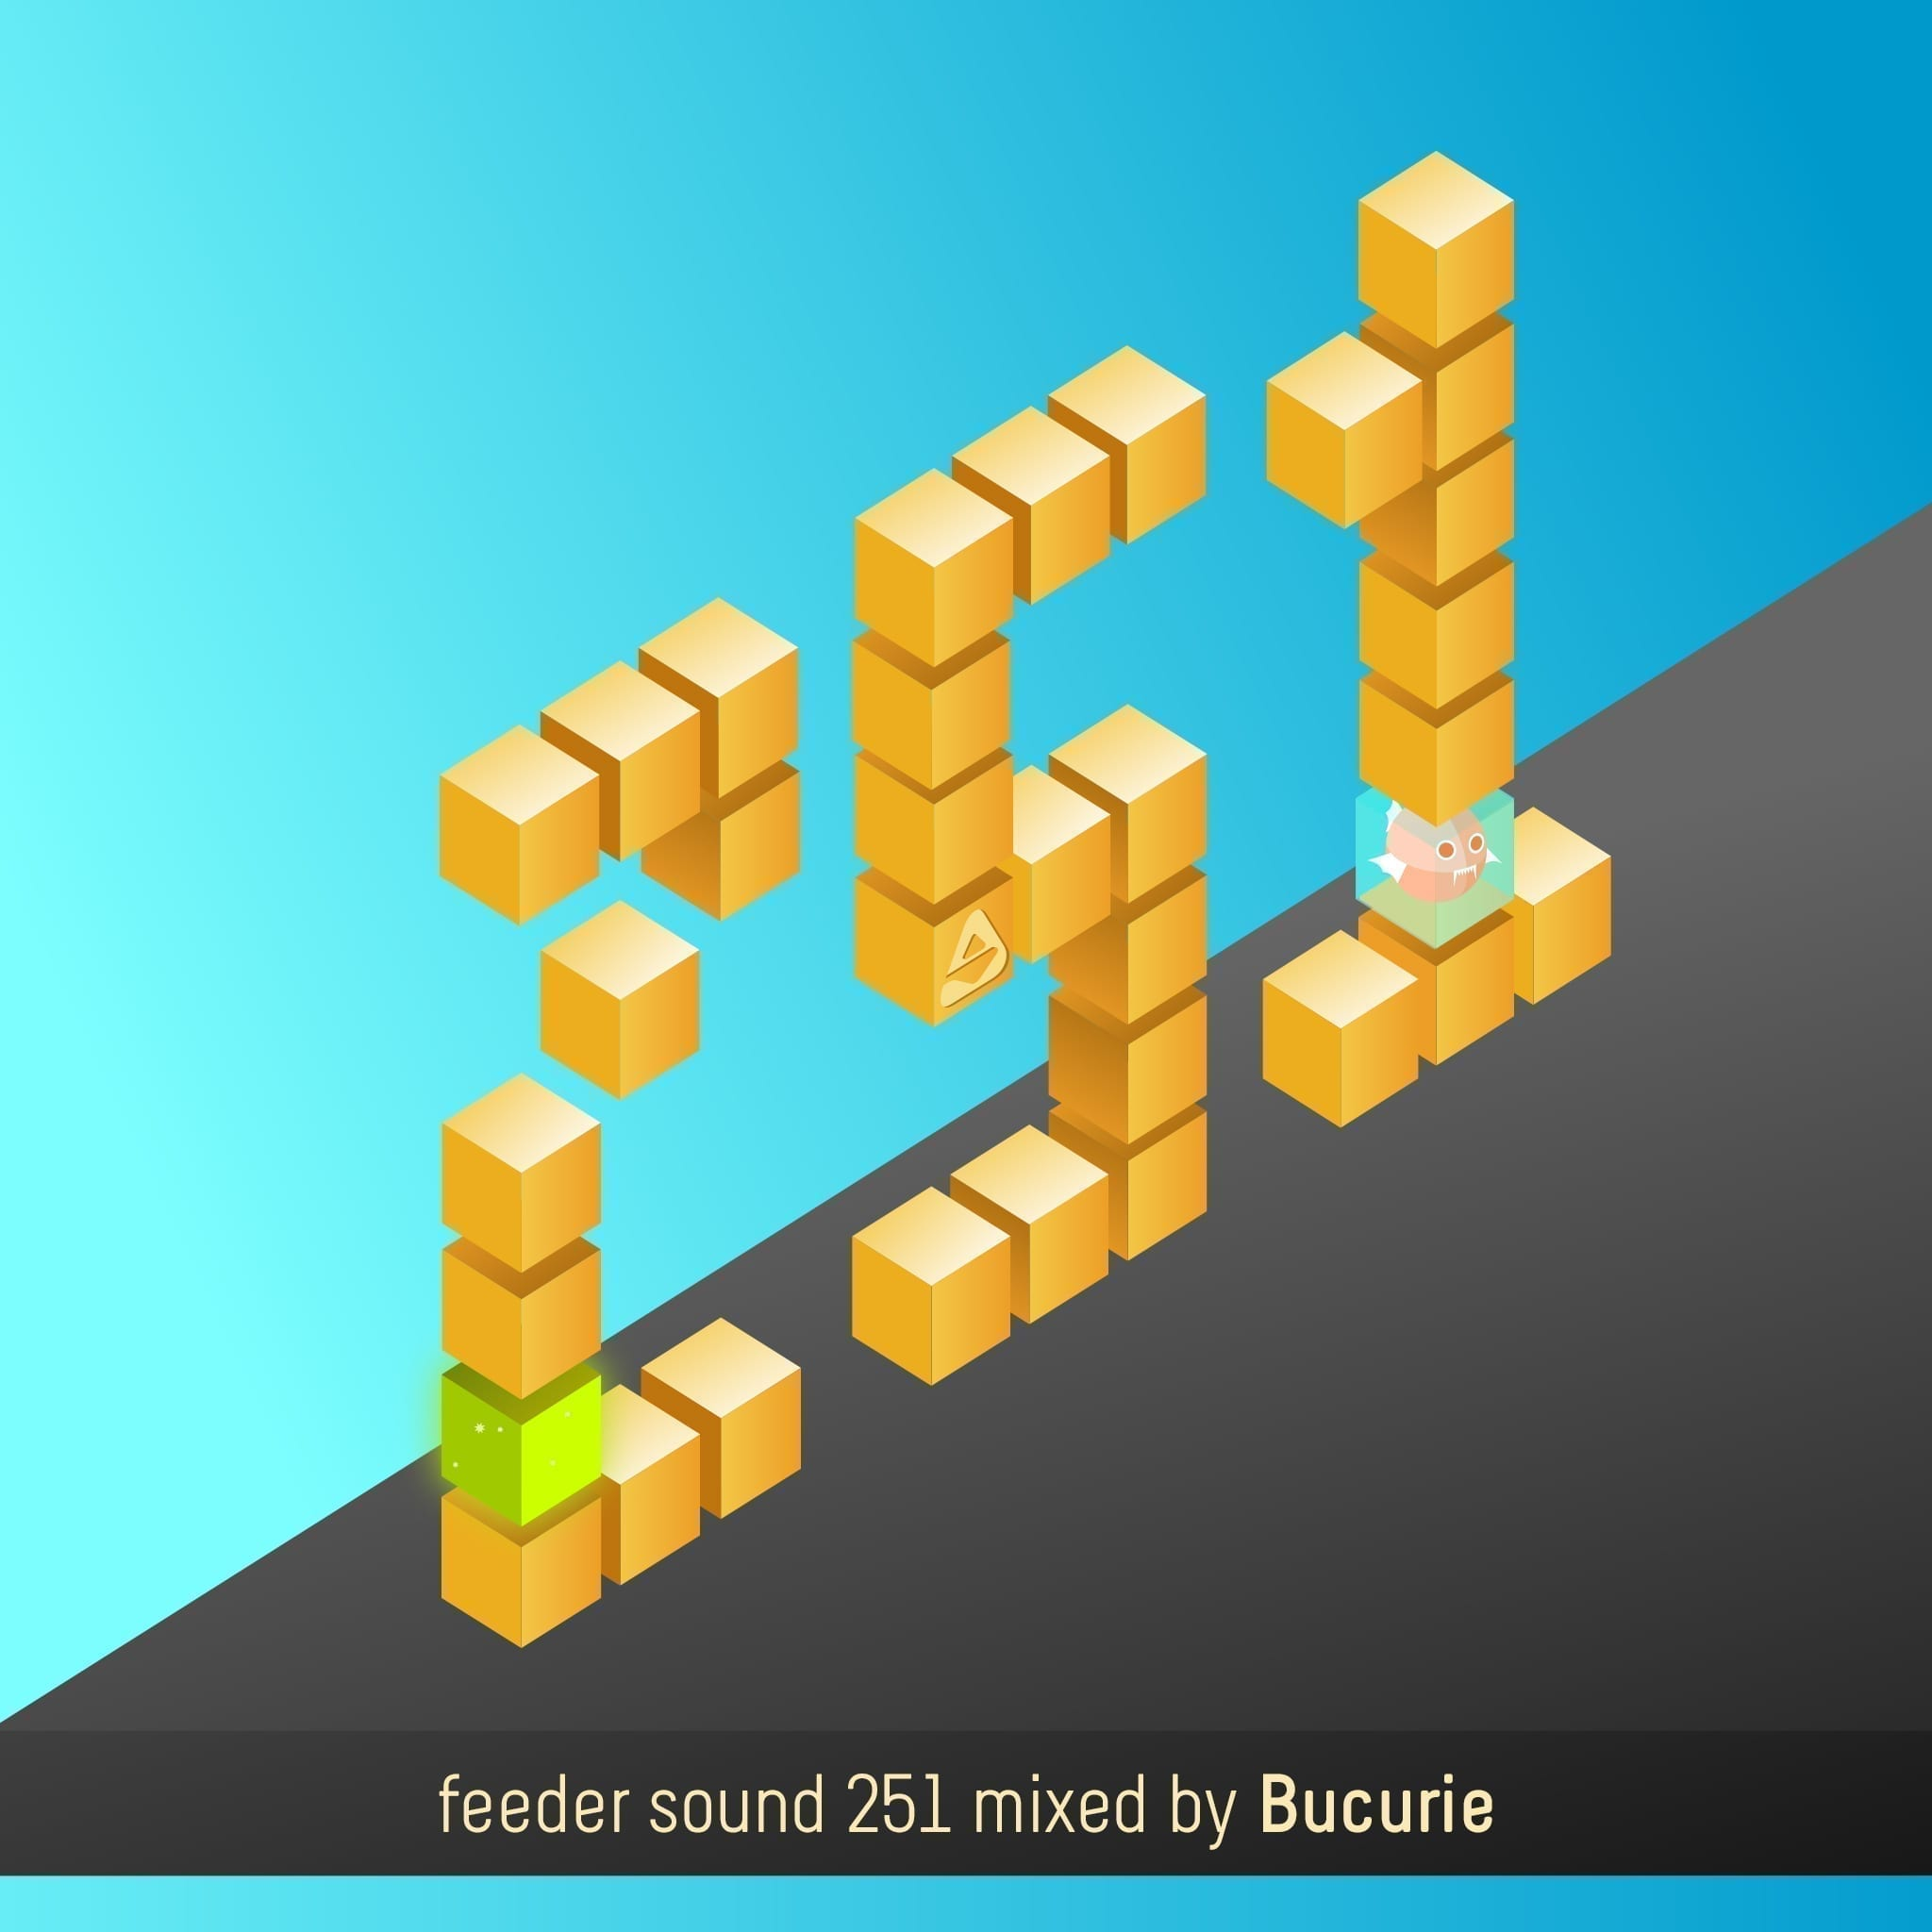 feeder sound 251 mixed by Bucurie 01